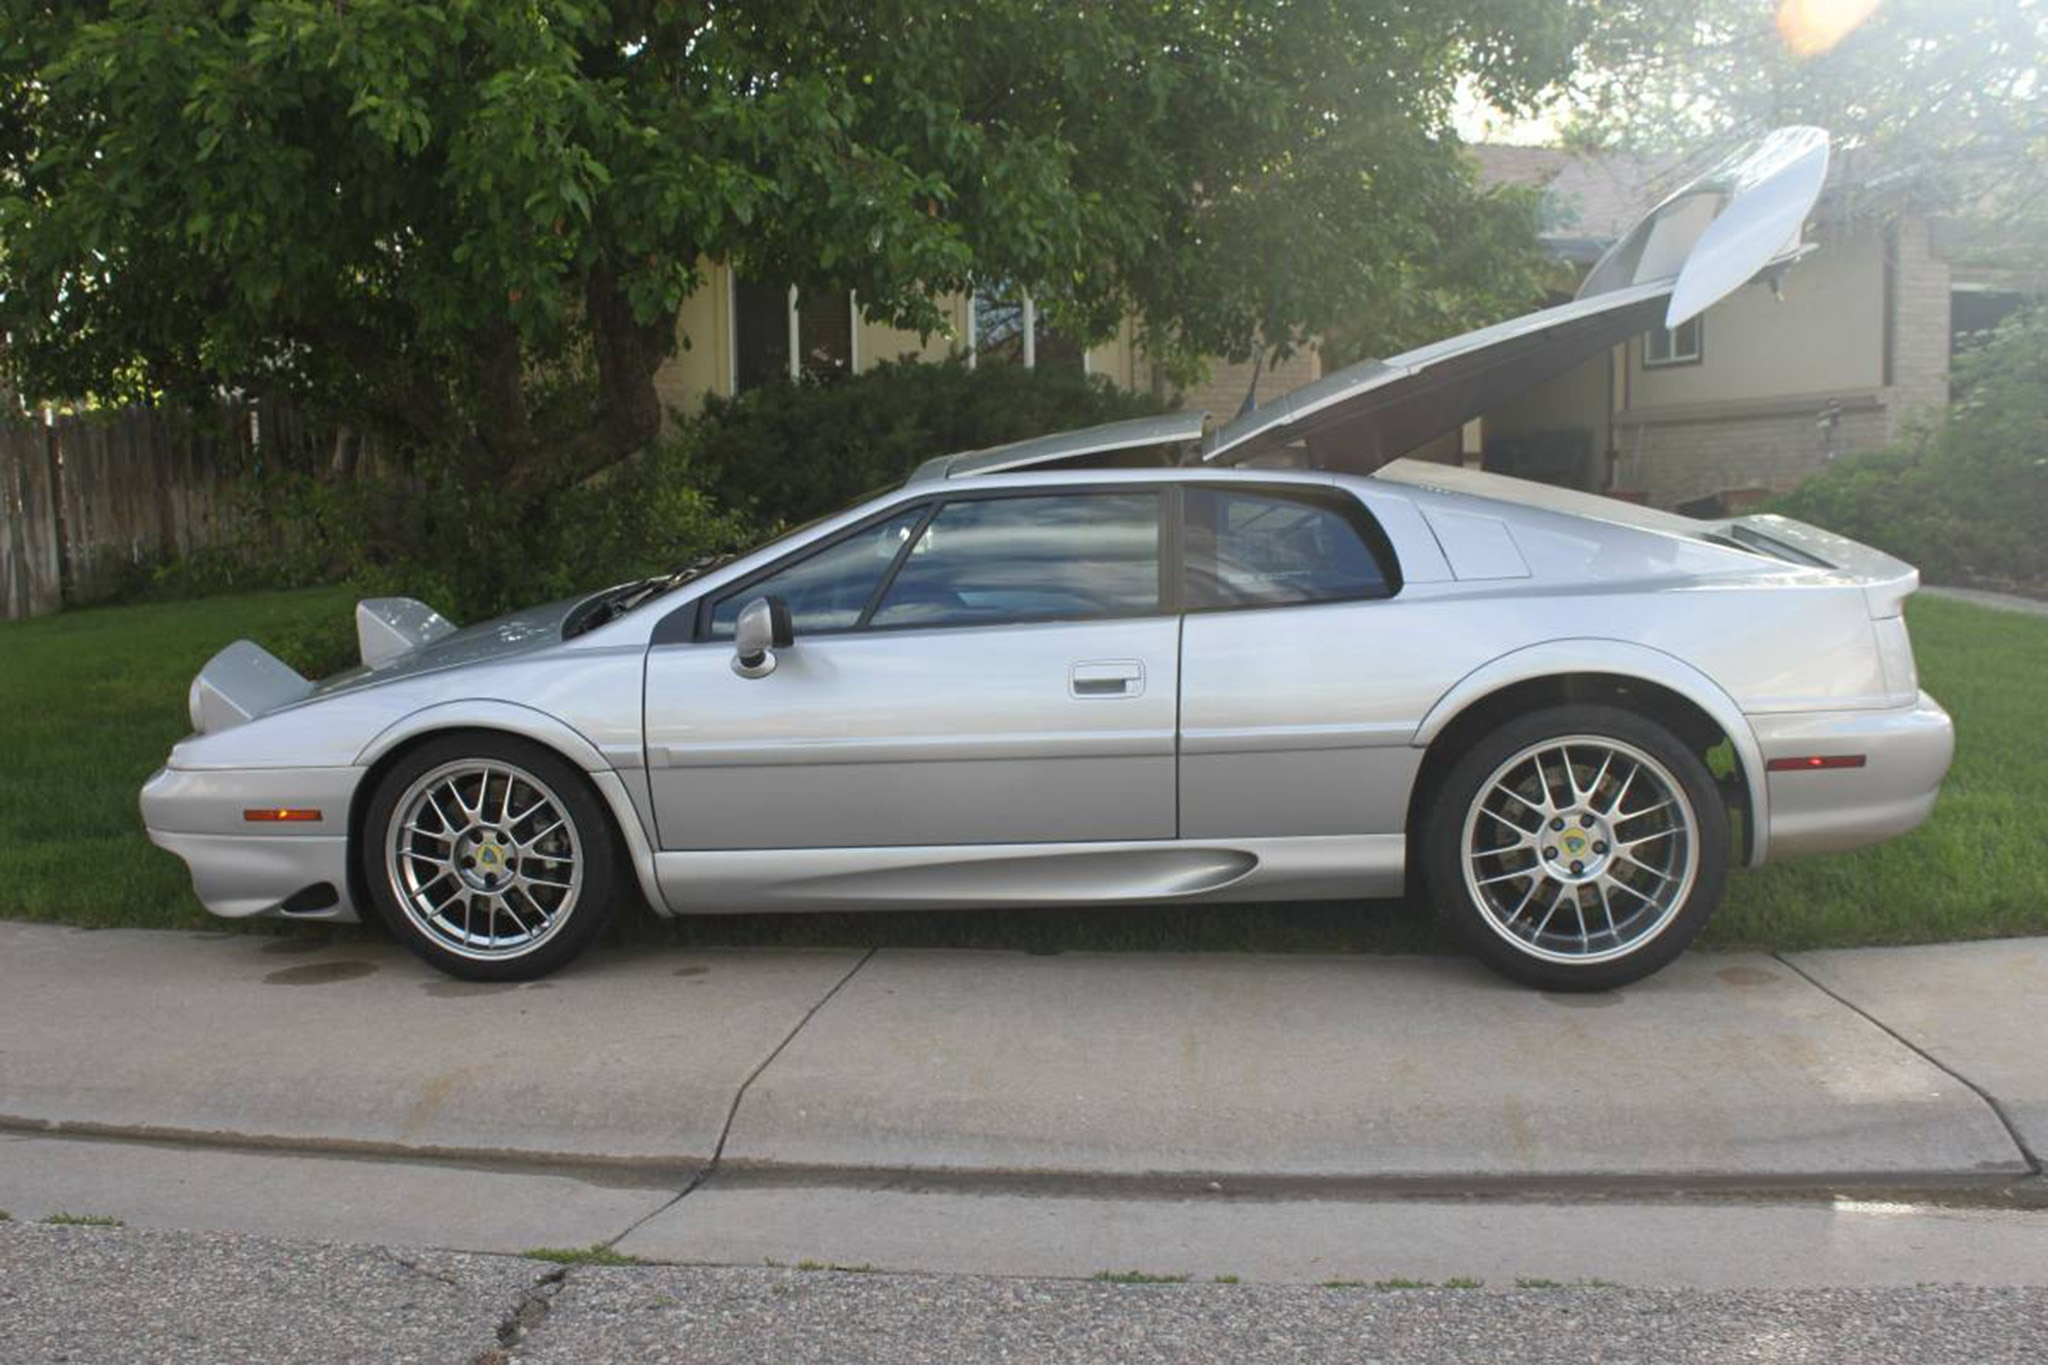 http://st.automobilemag.com/uploads/sites/11/2017/08/2002-Lotus-Esprit-V8-Just-Listed-Side.jpg